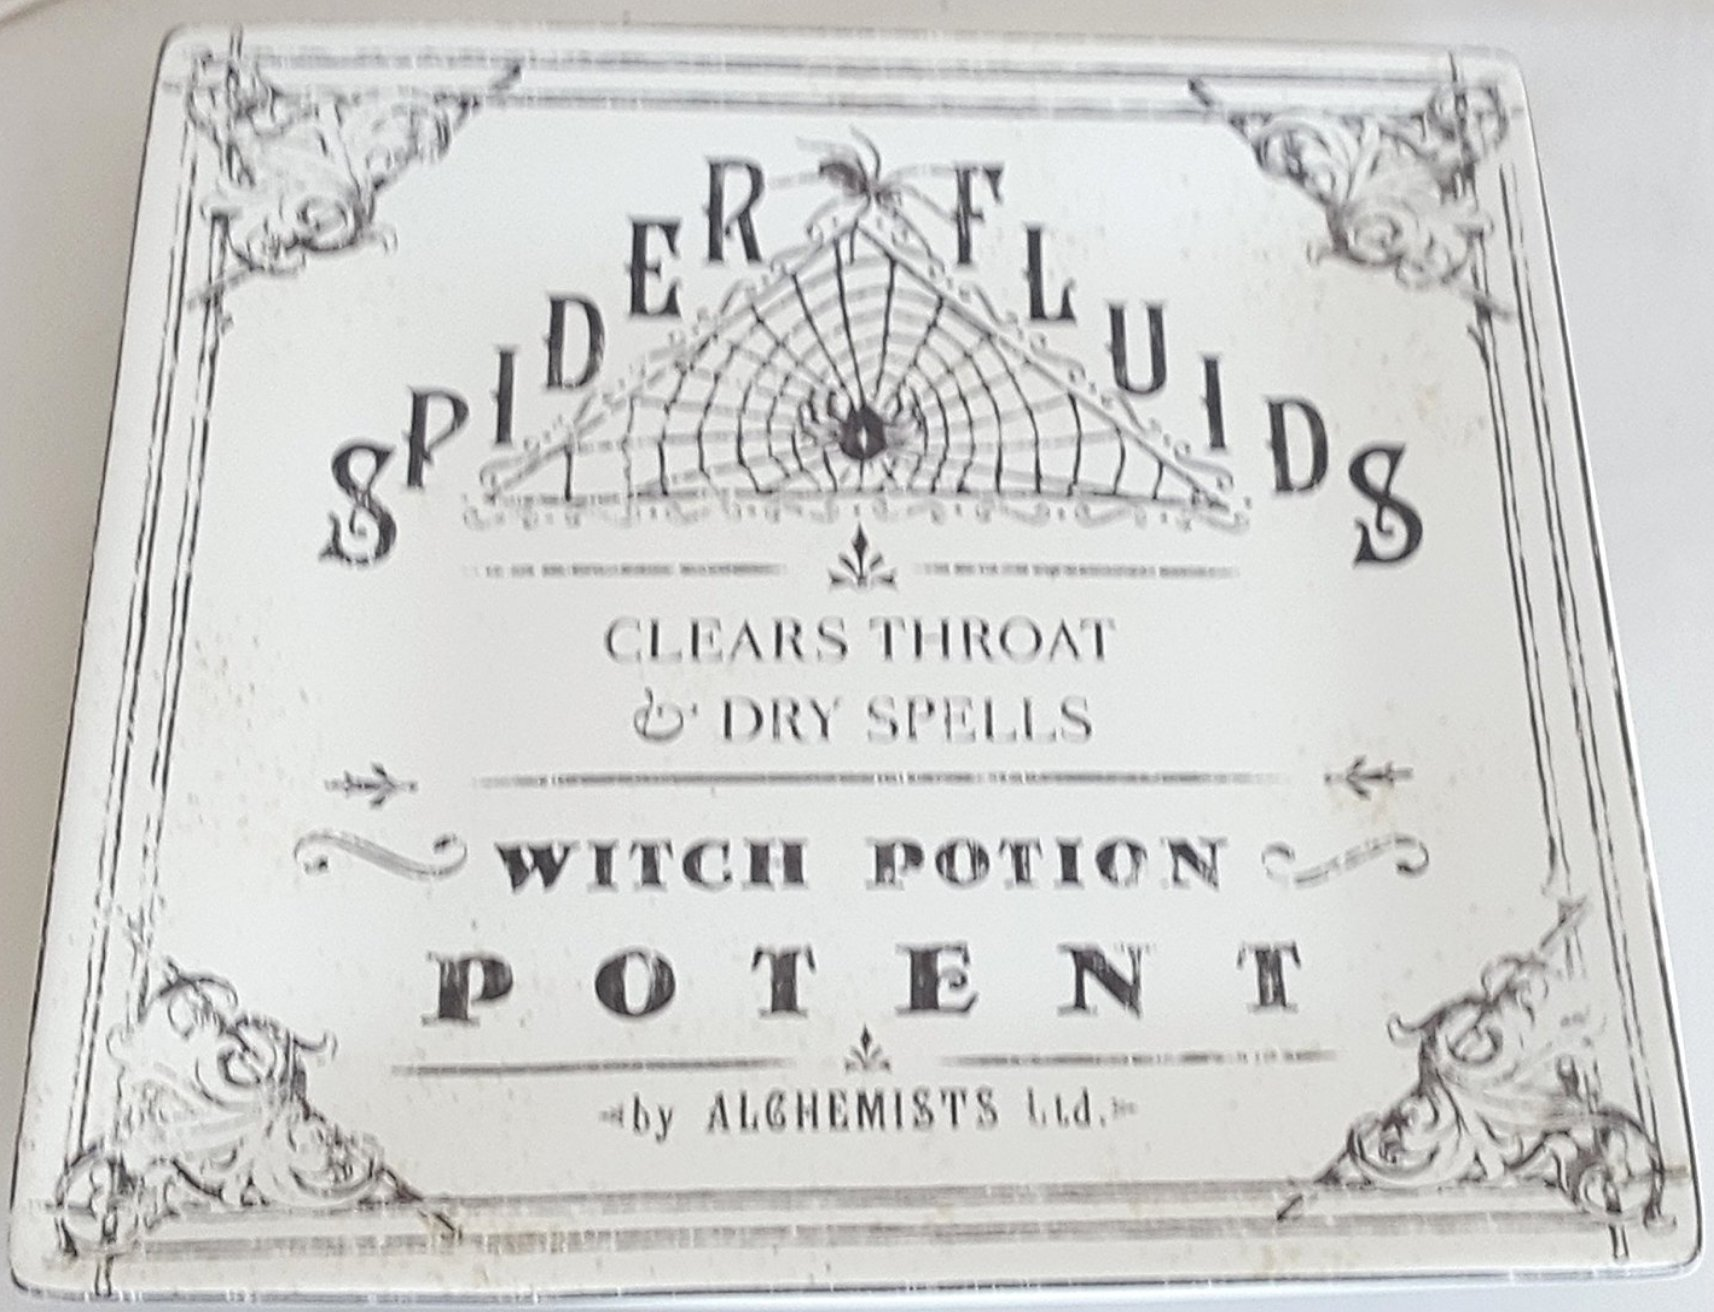 222 Fifth Hallow Apothecary Spider Fluids Large Square Halloween Serving Plate / Platter